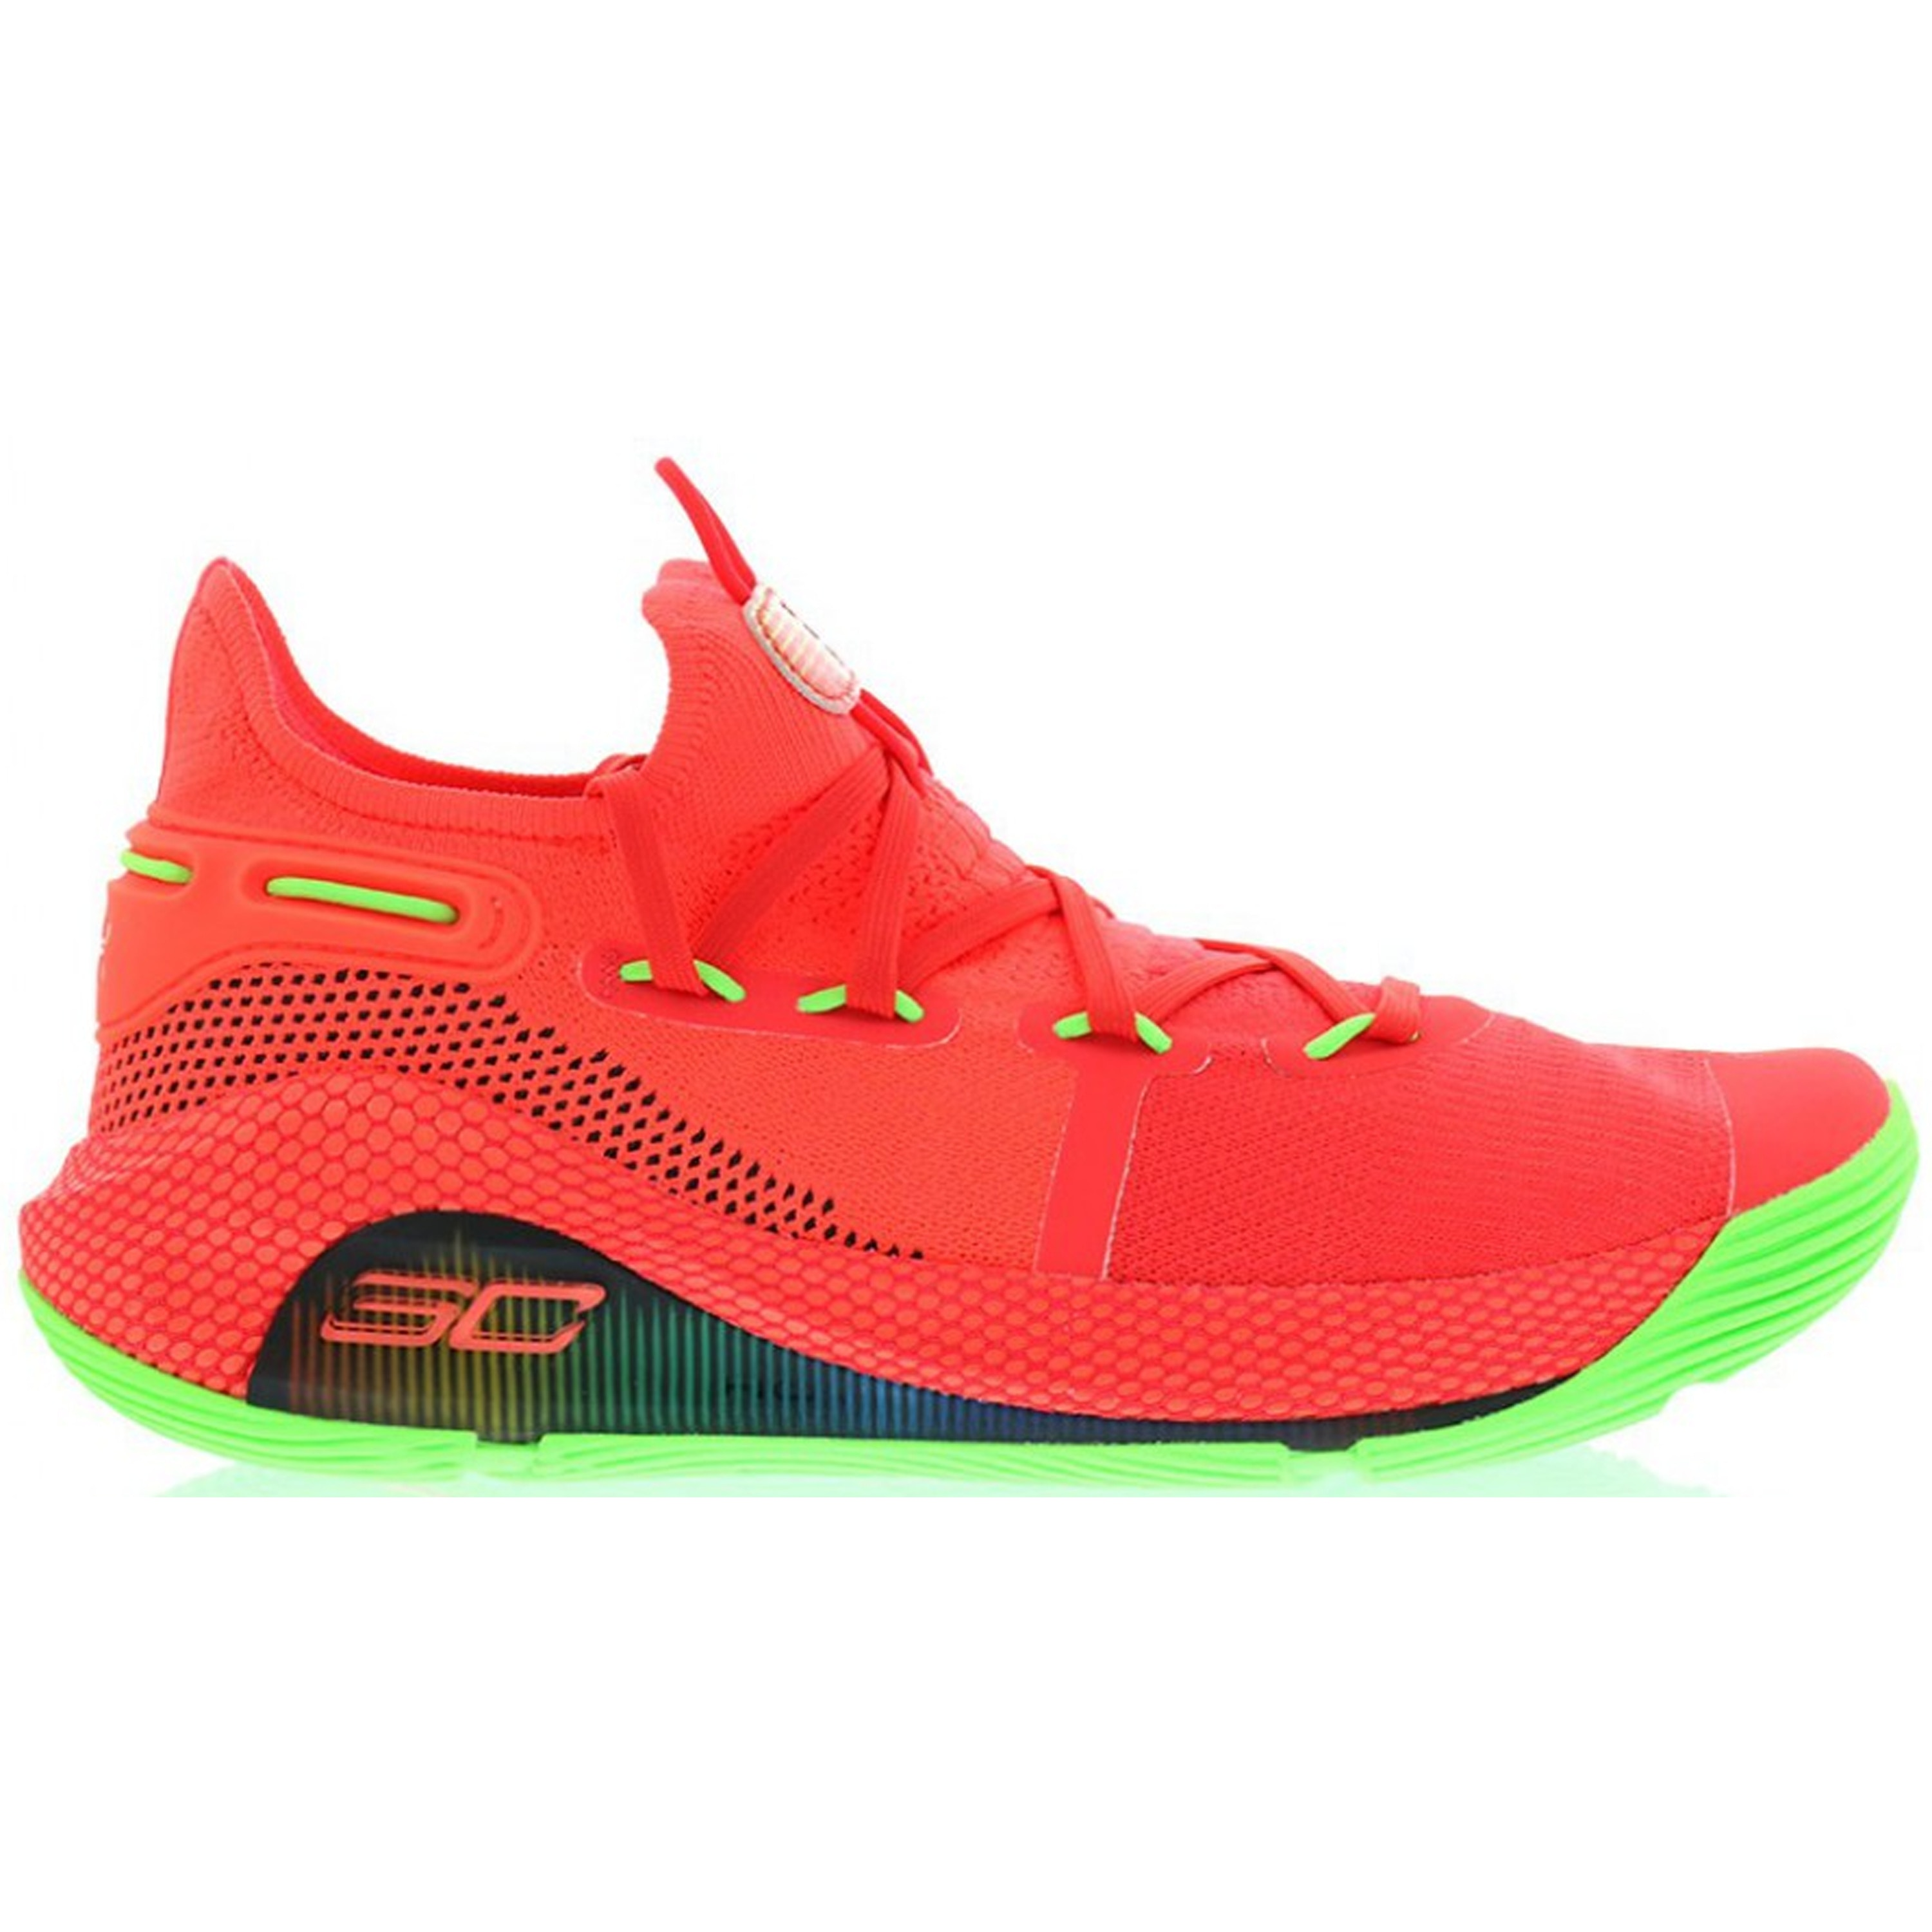 Under Armour Curry 6 Roaracle (3020612-607)